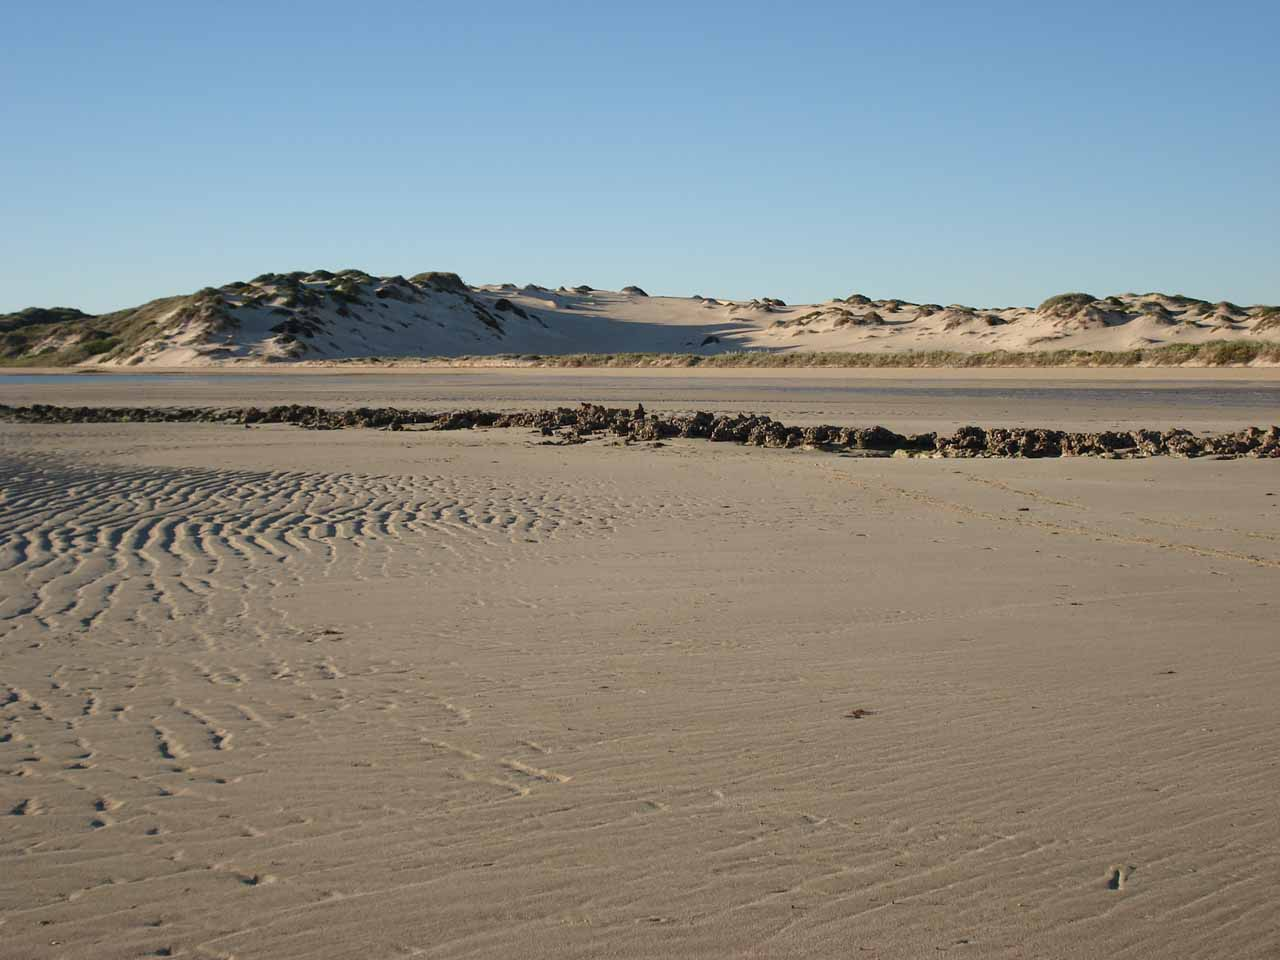 The dunes by Coral Bay